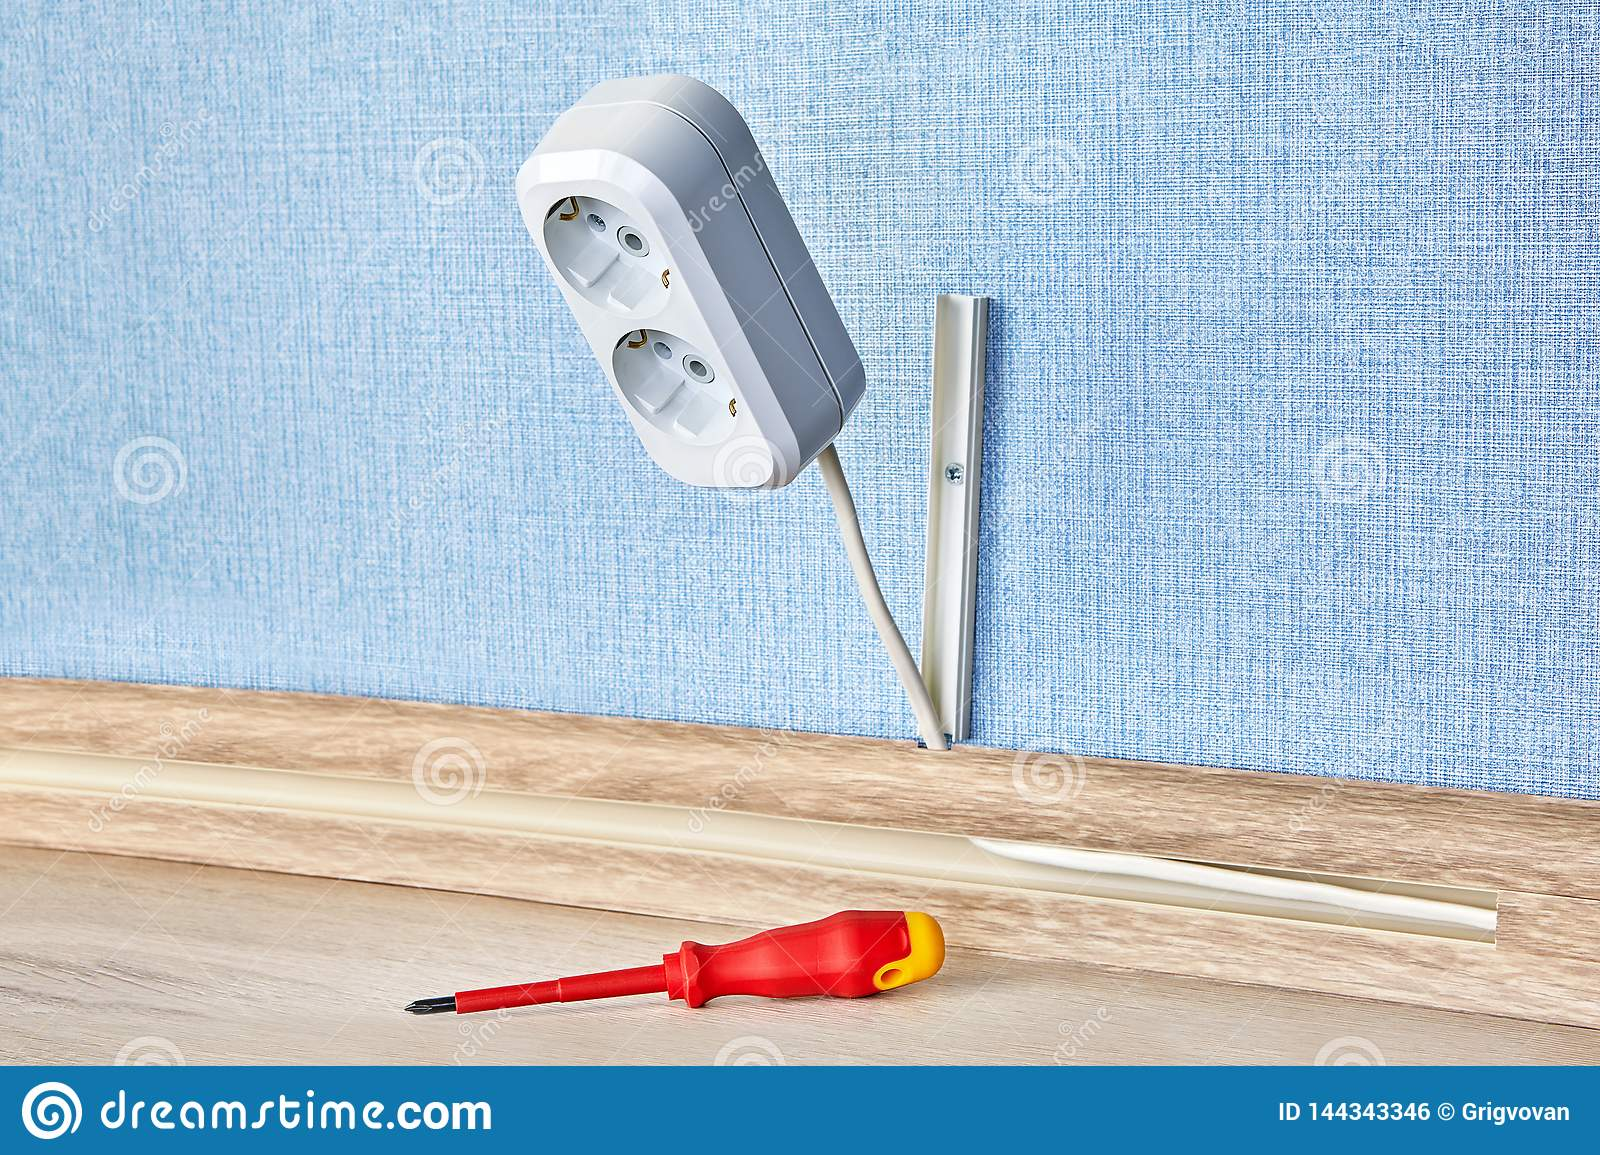 Wiring Up Of Electrical Plug Outlet Stock Photo Image Of People Euro 144343346